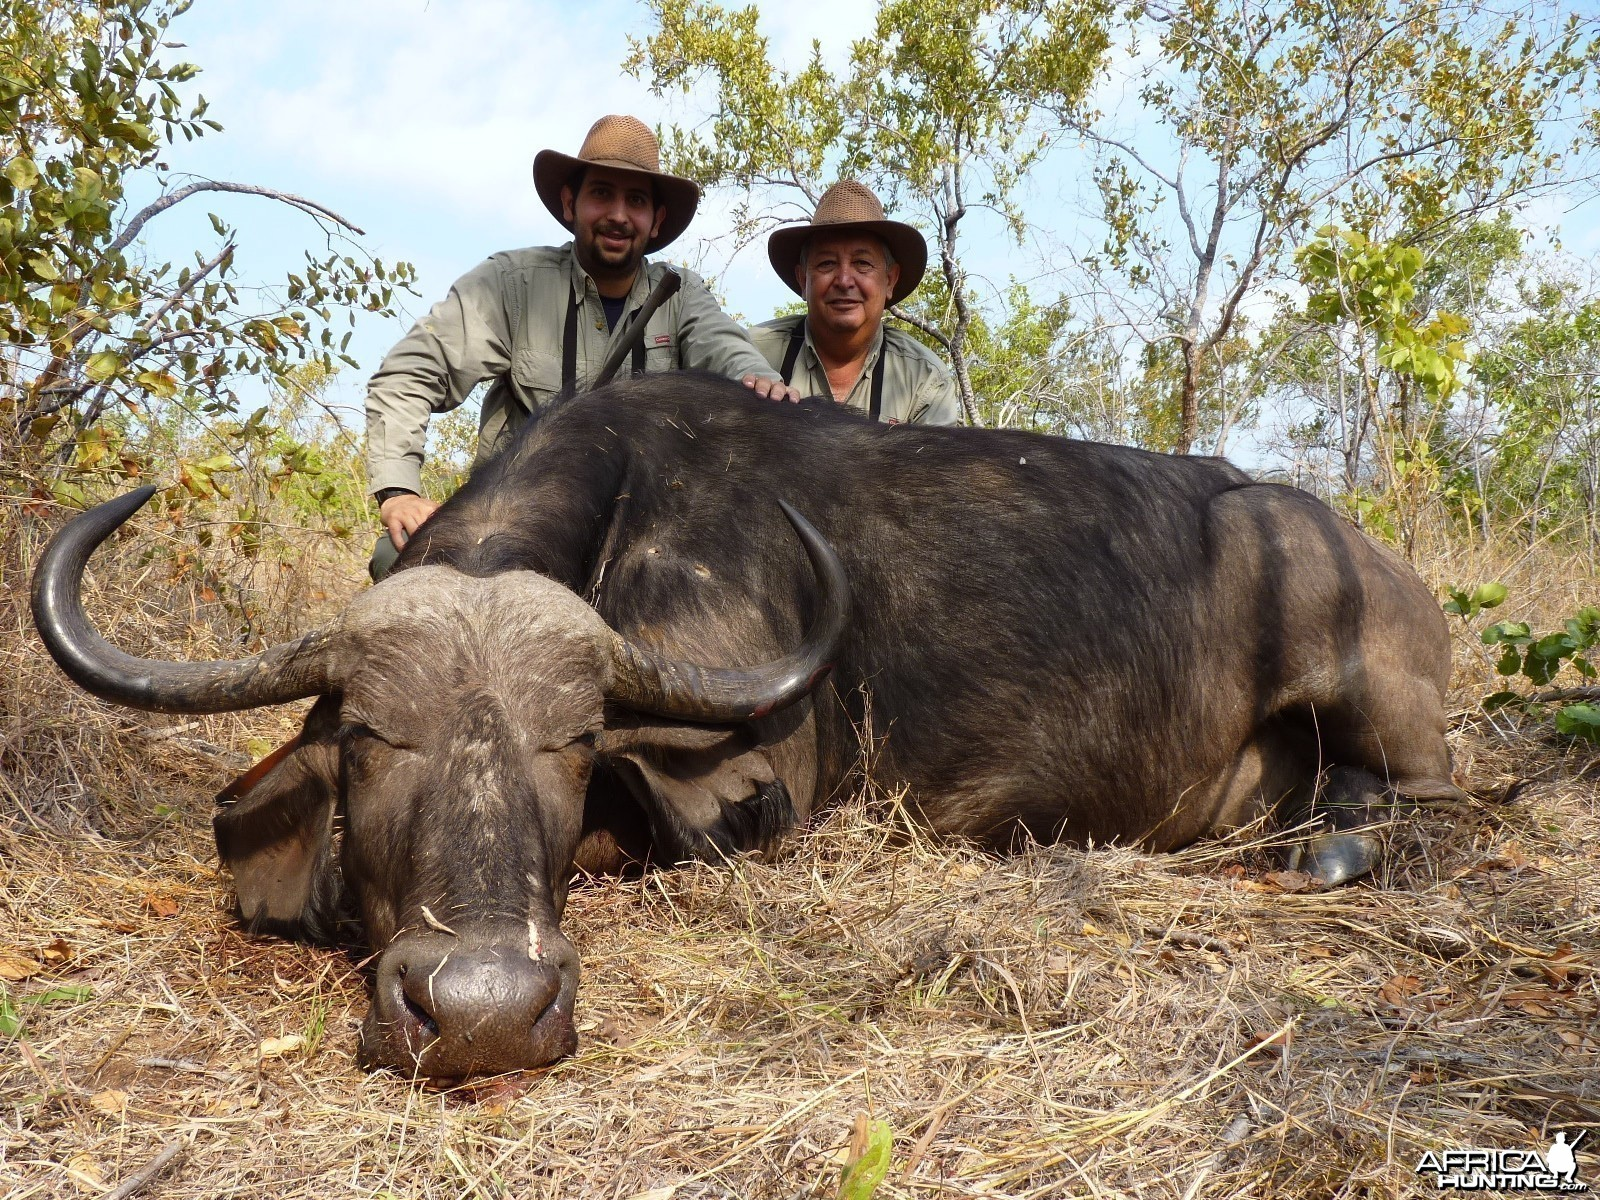 Hunting Buffalo Cow with Wintershoek Johnny Vivier Safaris in SA